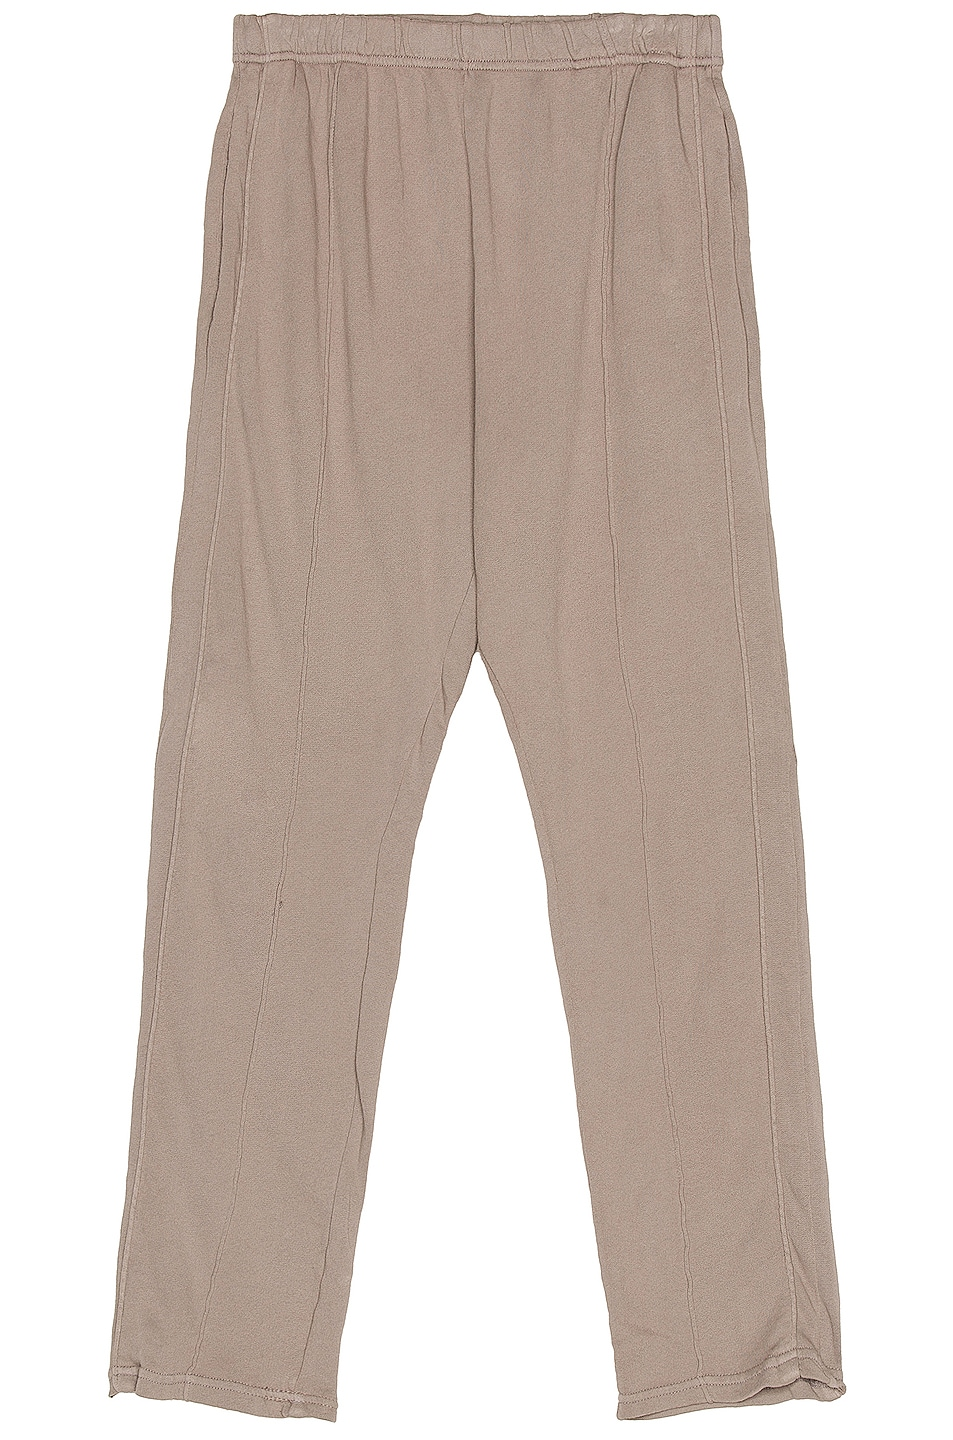 Image 1 of Les Tien Light Weight Lounge Pant in Dove